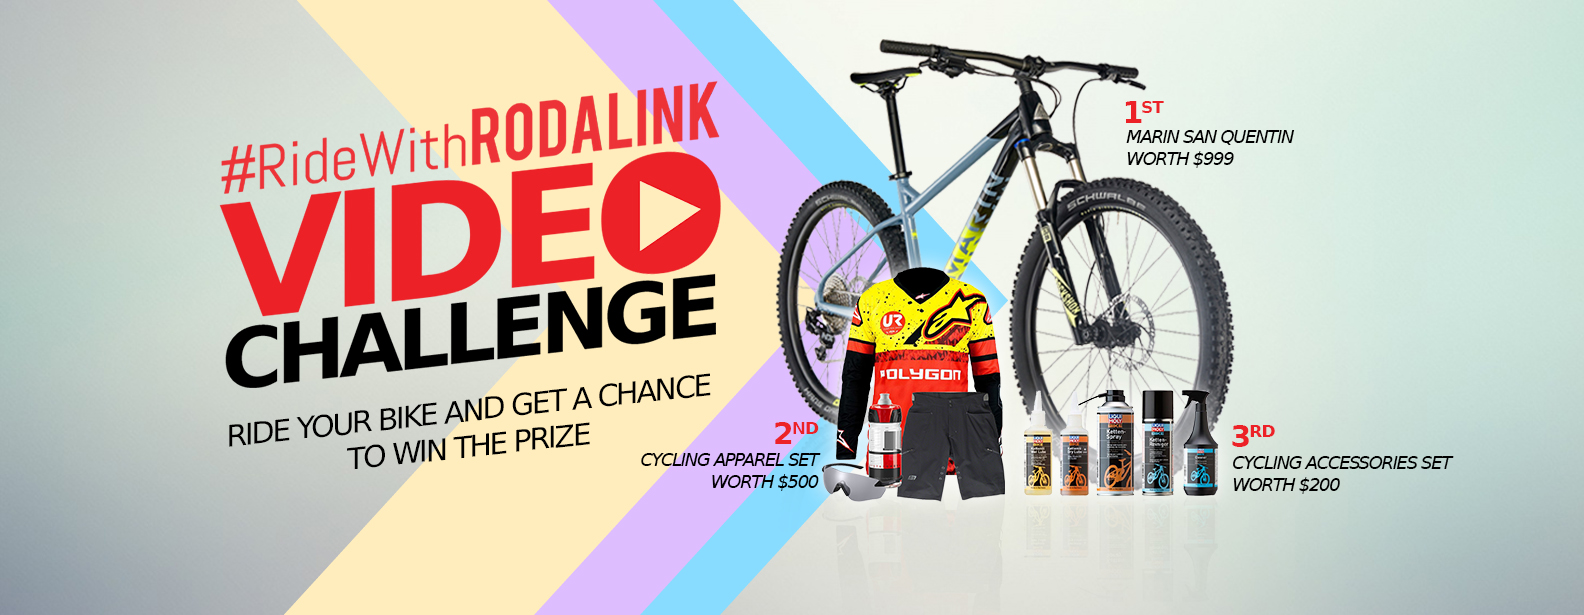 RIDE WITH RODALINK VIDEO CHALLENGE